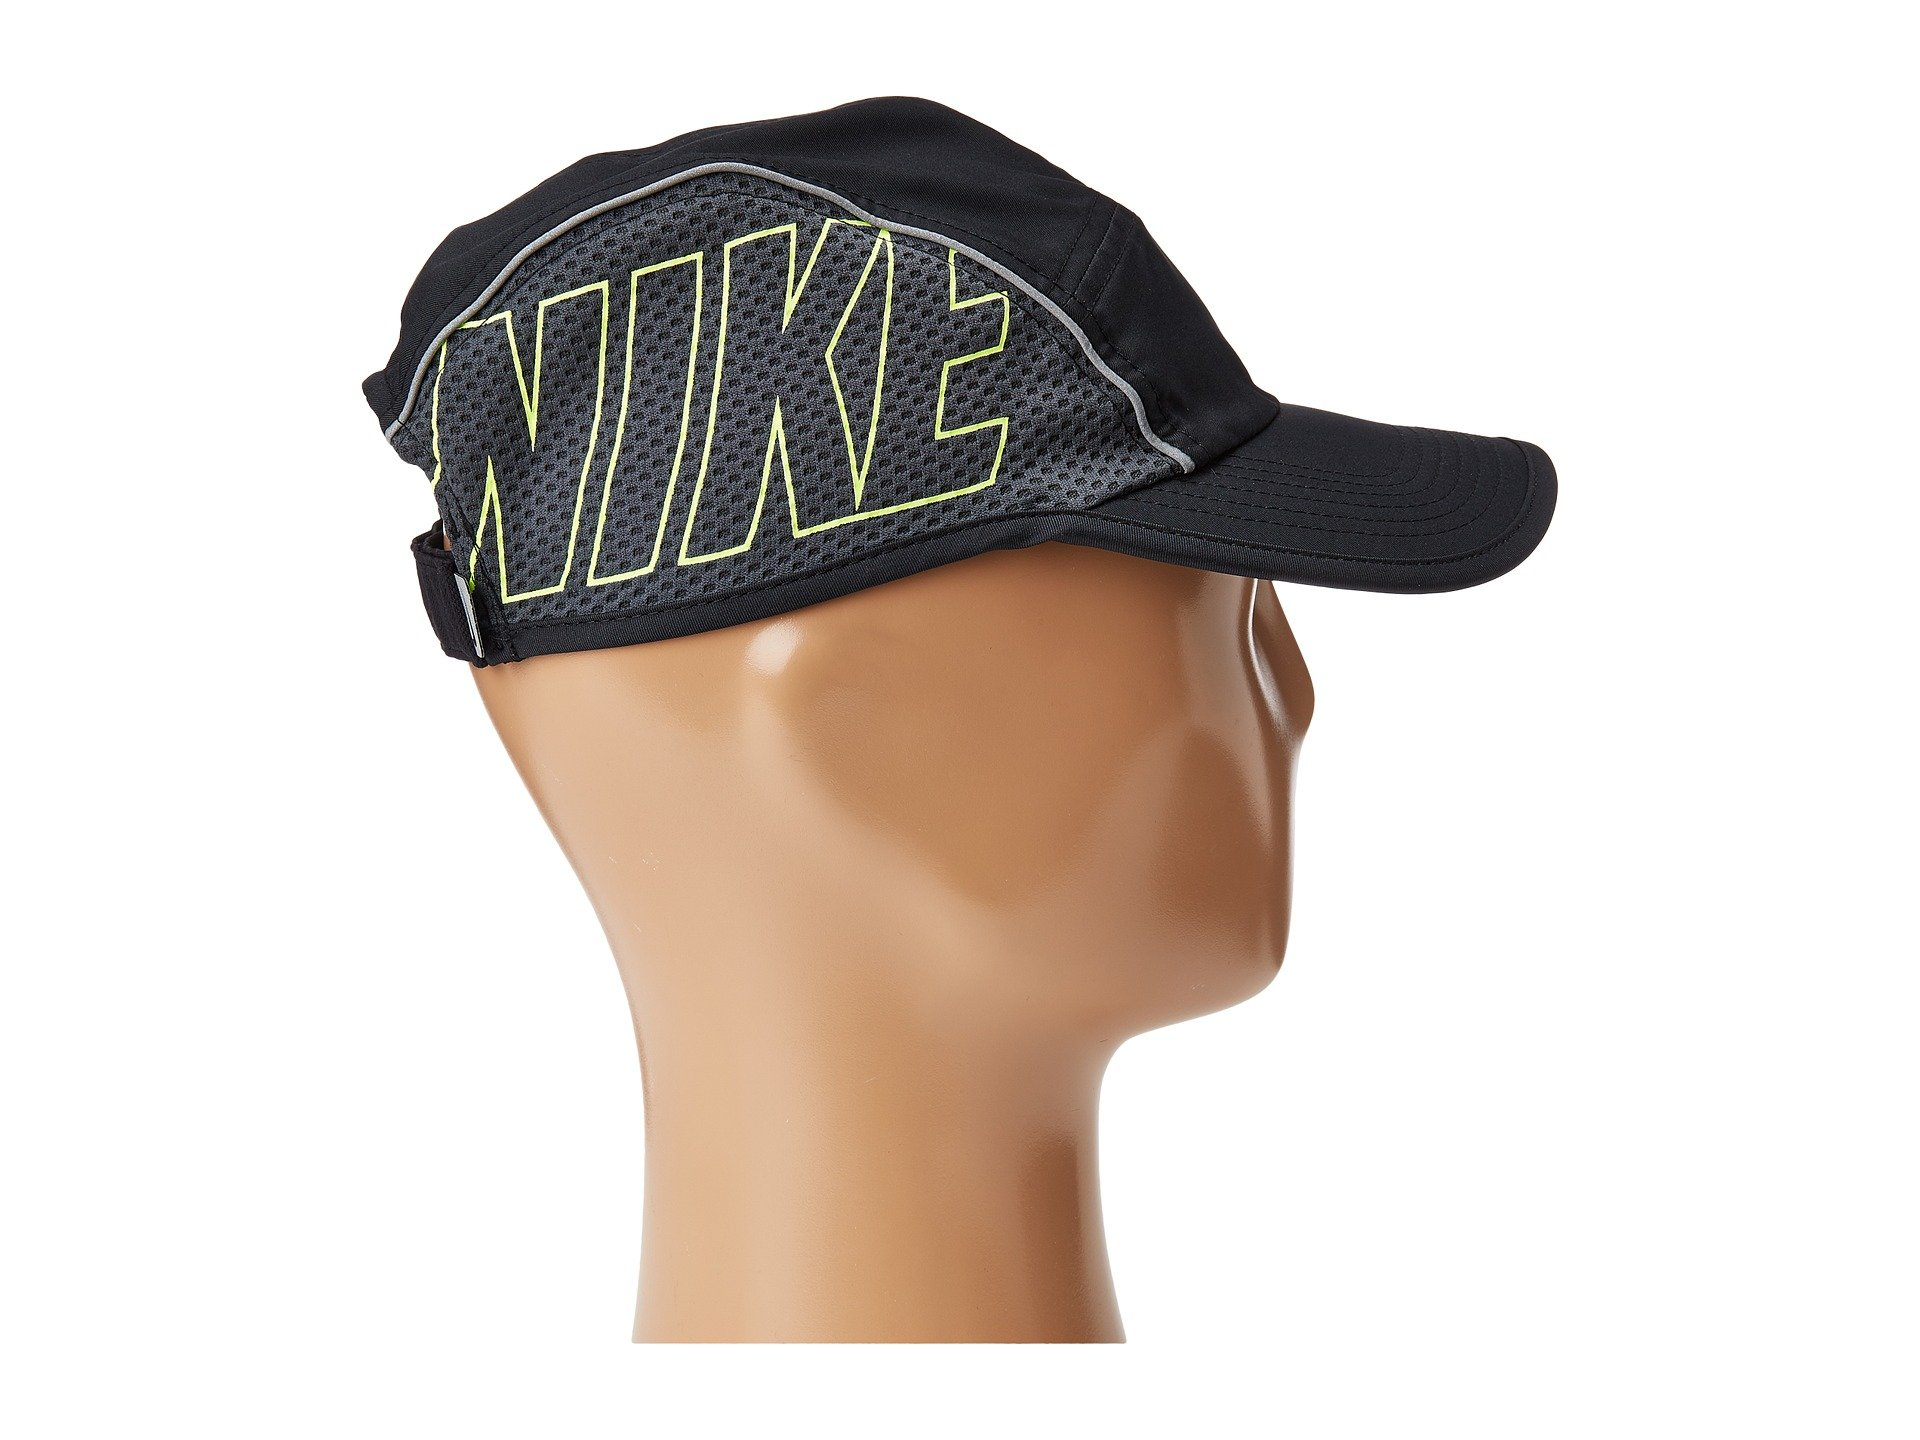 Shop Nike Aerobill Aw84 Running Cap In Black Anthracite Volt eba3e09db07c